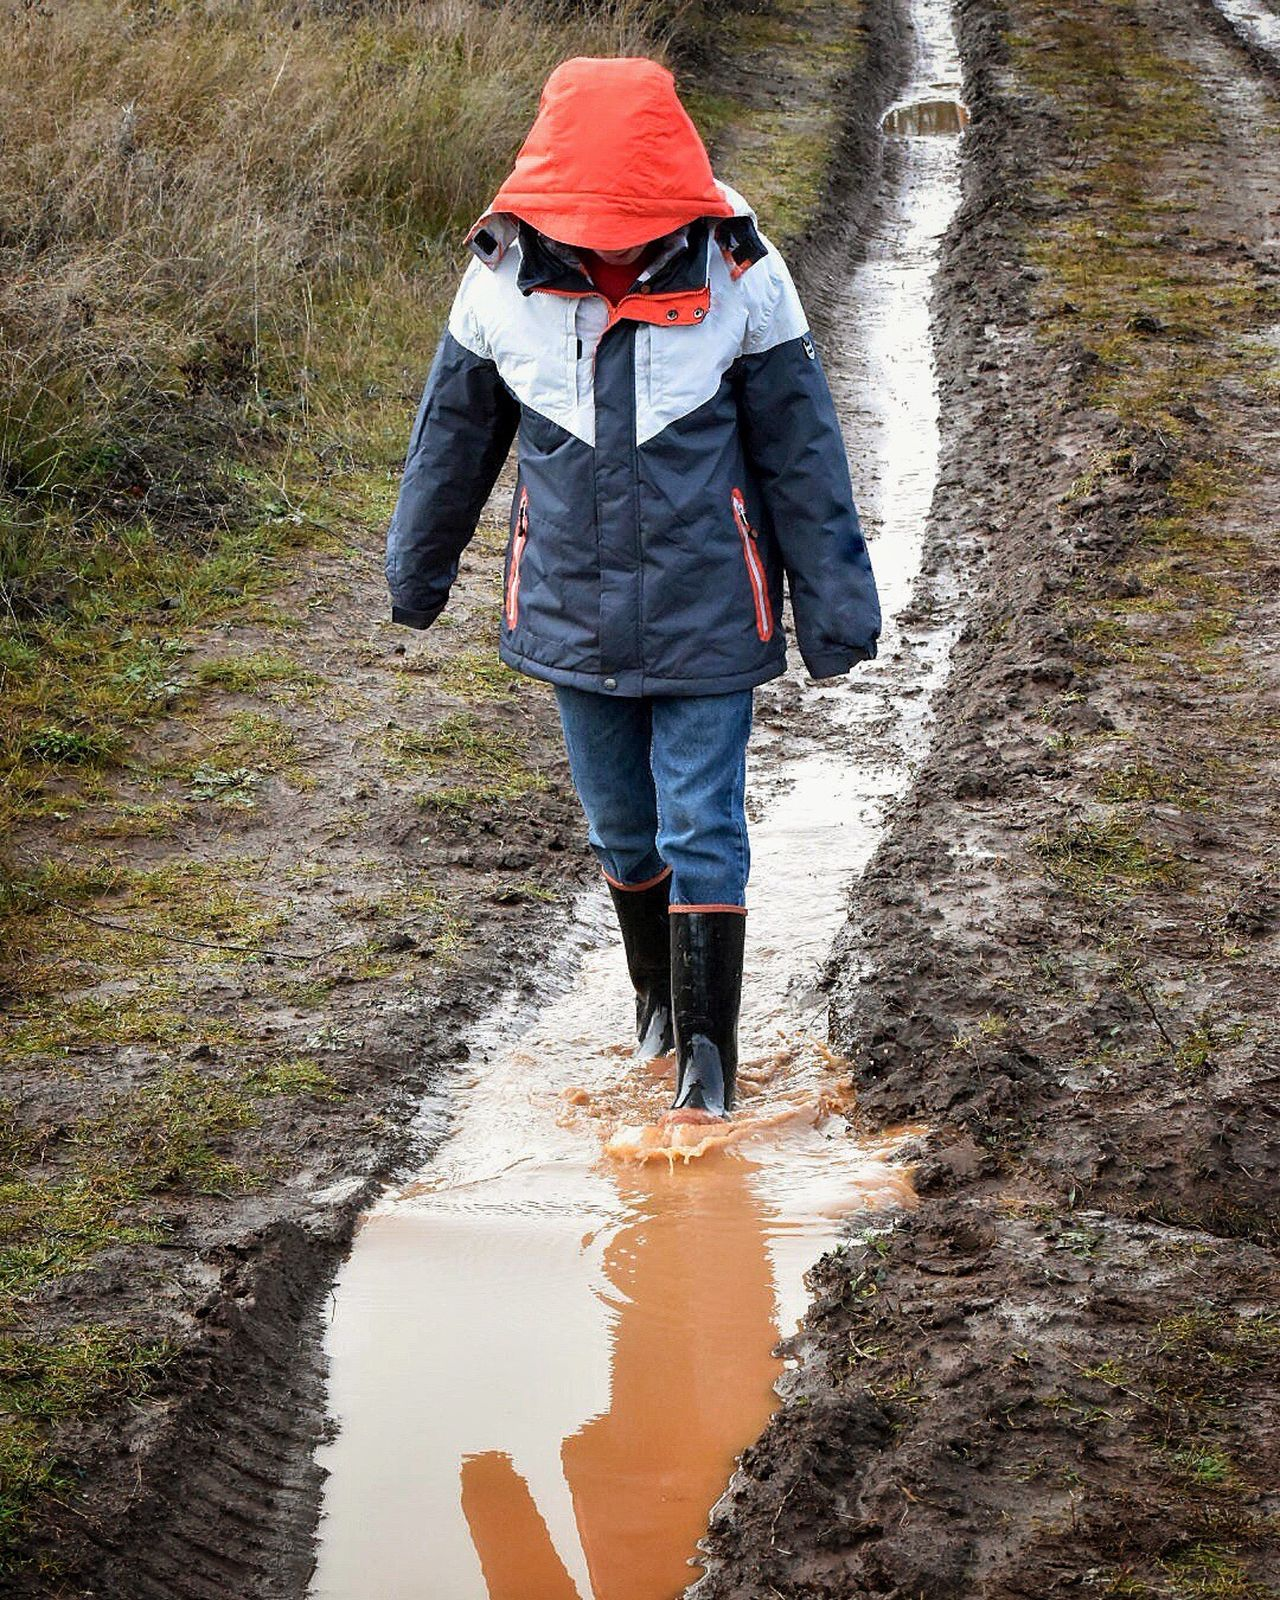 Walking Rear View Full Length Nature Rain Hiking Water Outdoors Standing Real People One Person Adventure Day Scenics Landscape People Tree Beauty In Nature Always Be Cozy Childhood Rubber Boots Puddles Puddleography Walking In A Puddle Playing